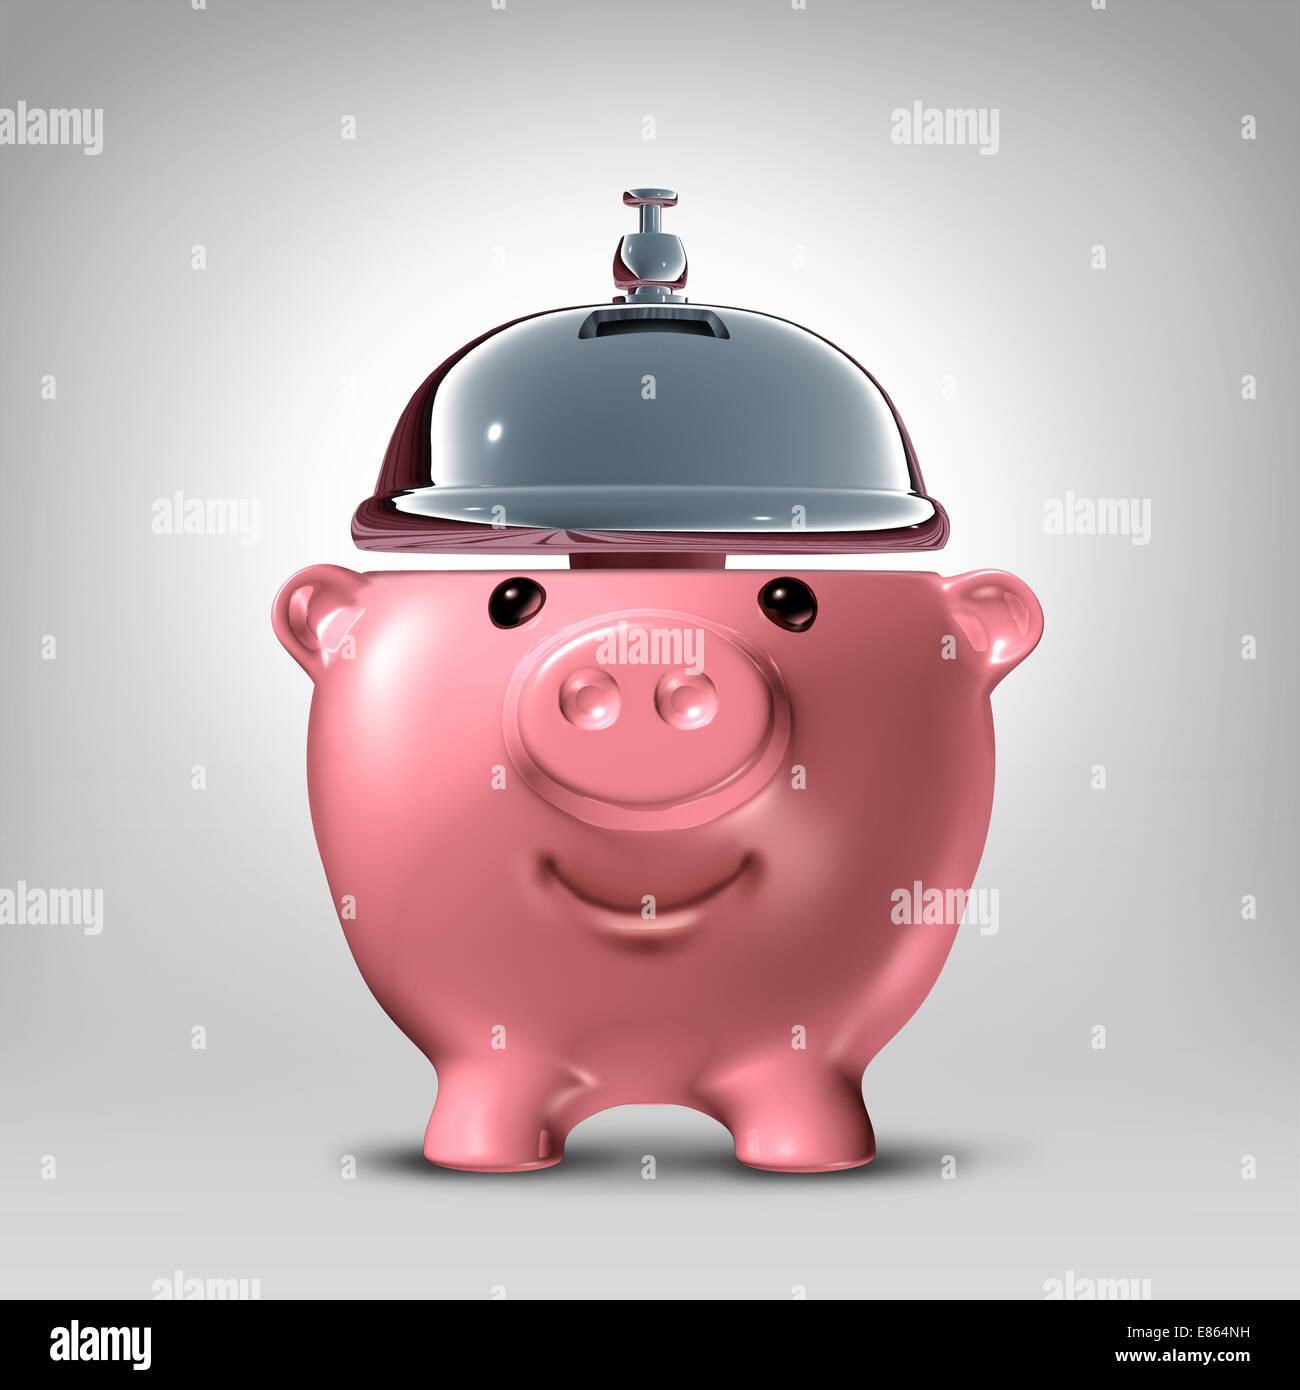 Banking service concept as a front view piggy bank shaped as a hospitality servicing bell as a symbol for good banking - Stock Image